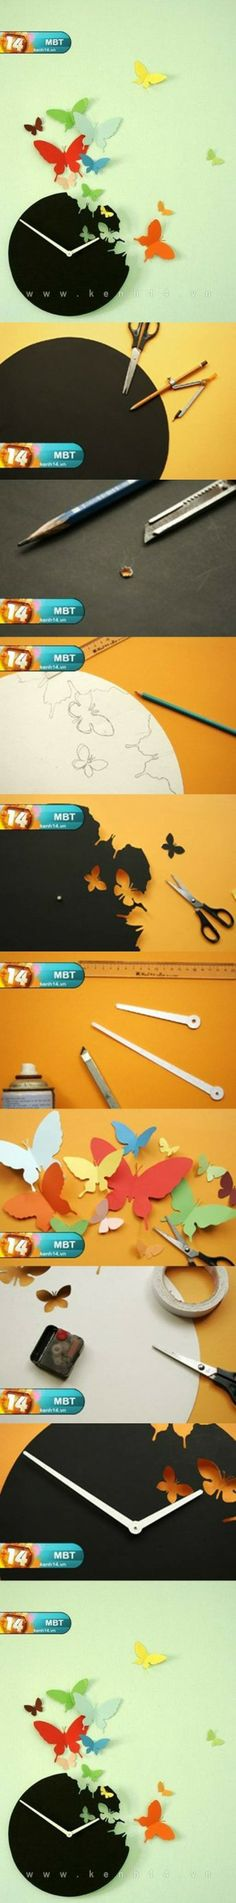 DIY Butterfly Clock DIY Projects